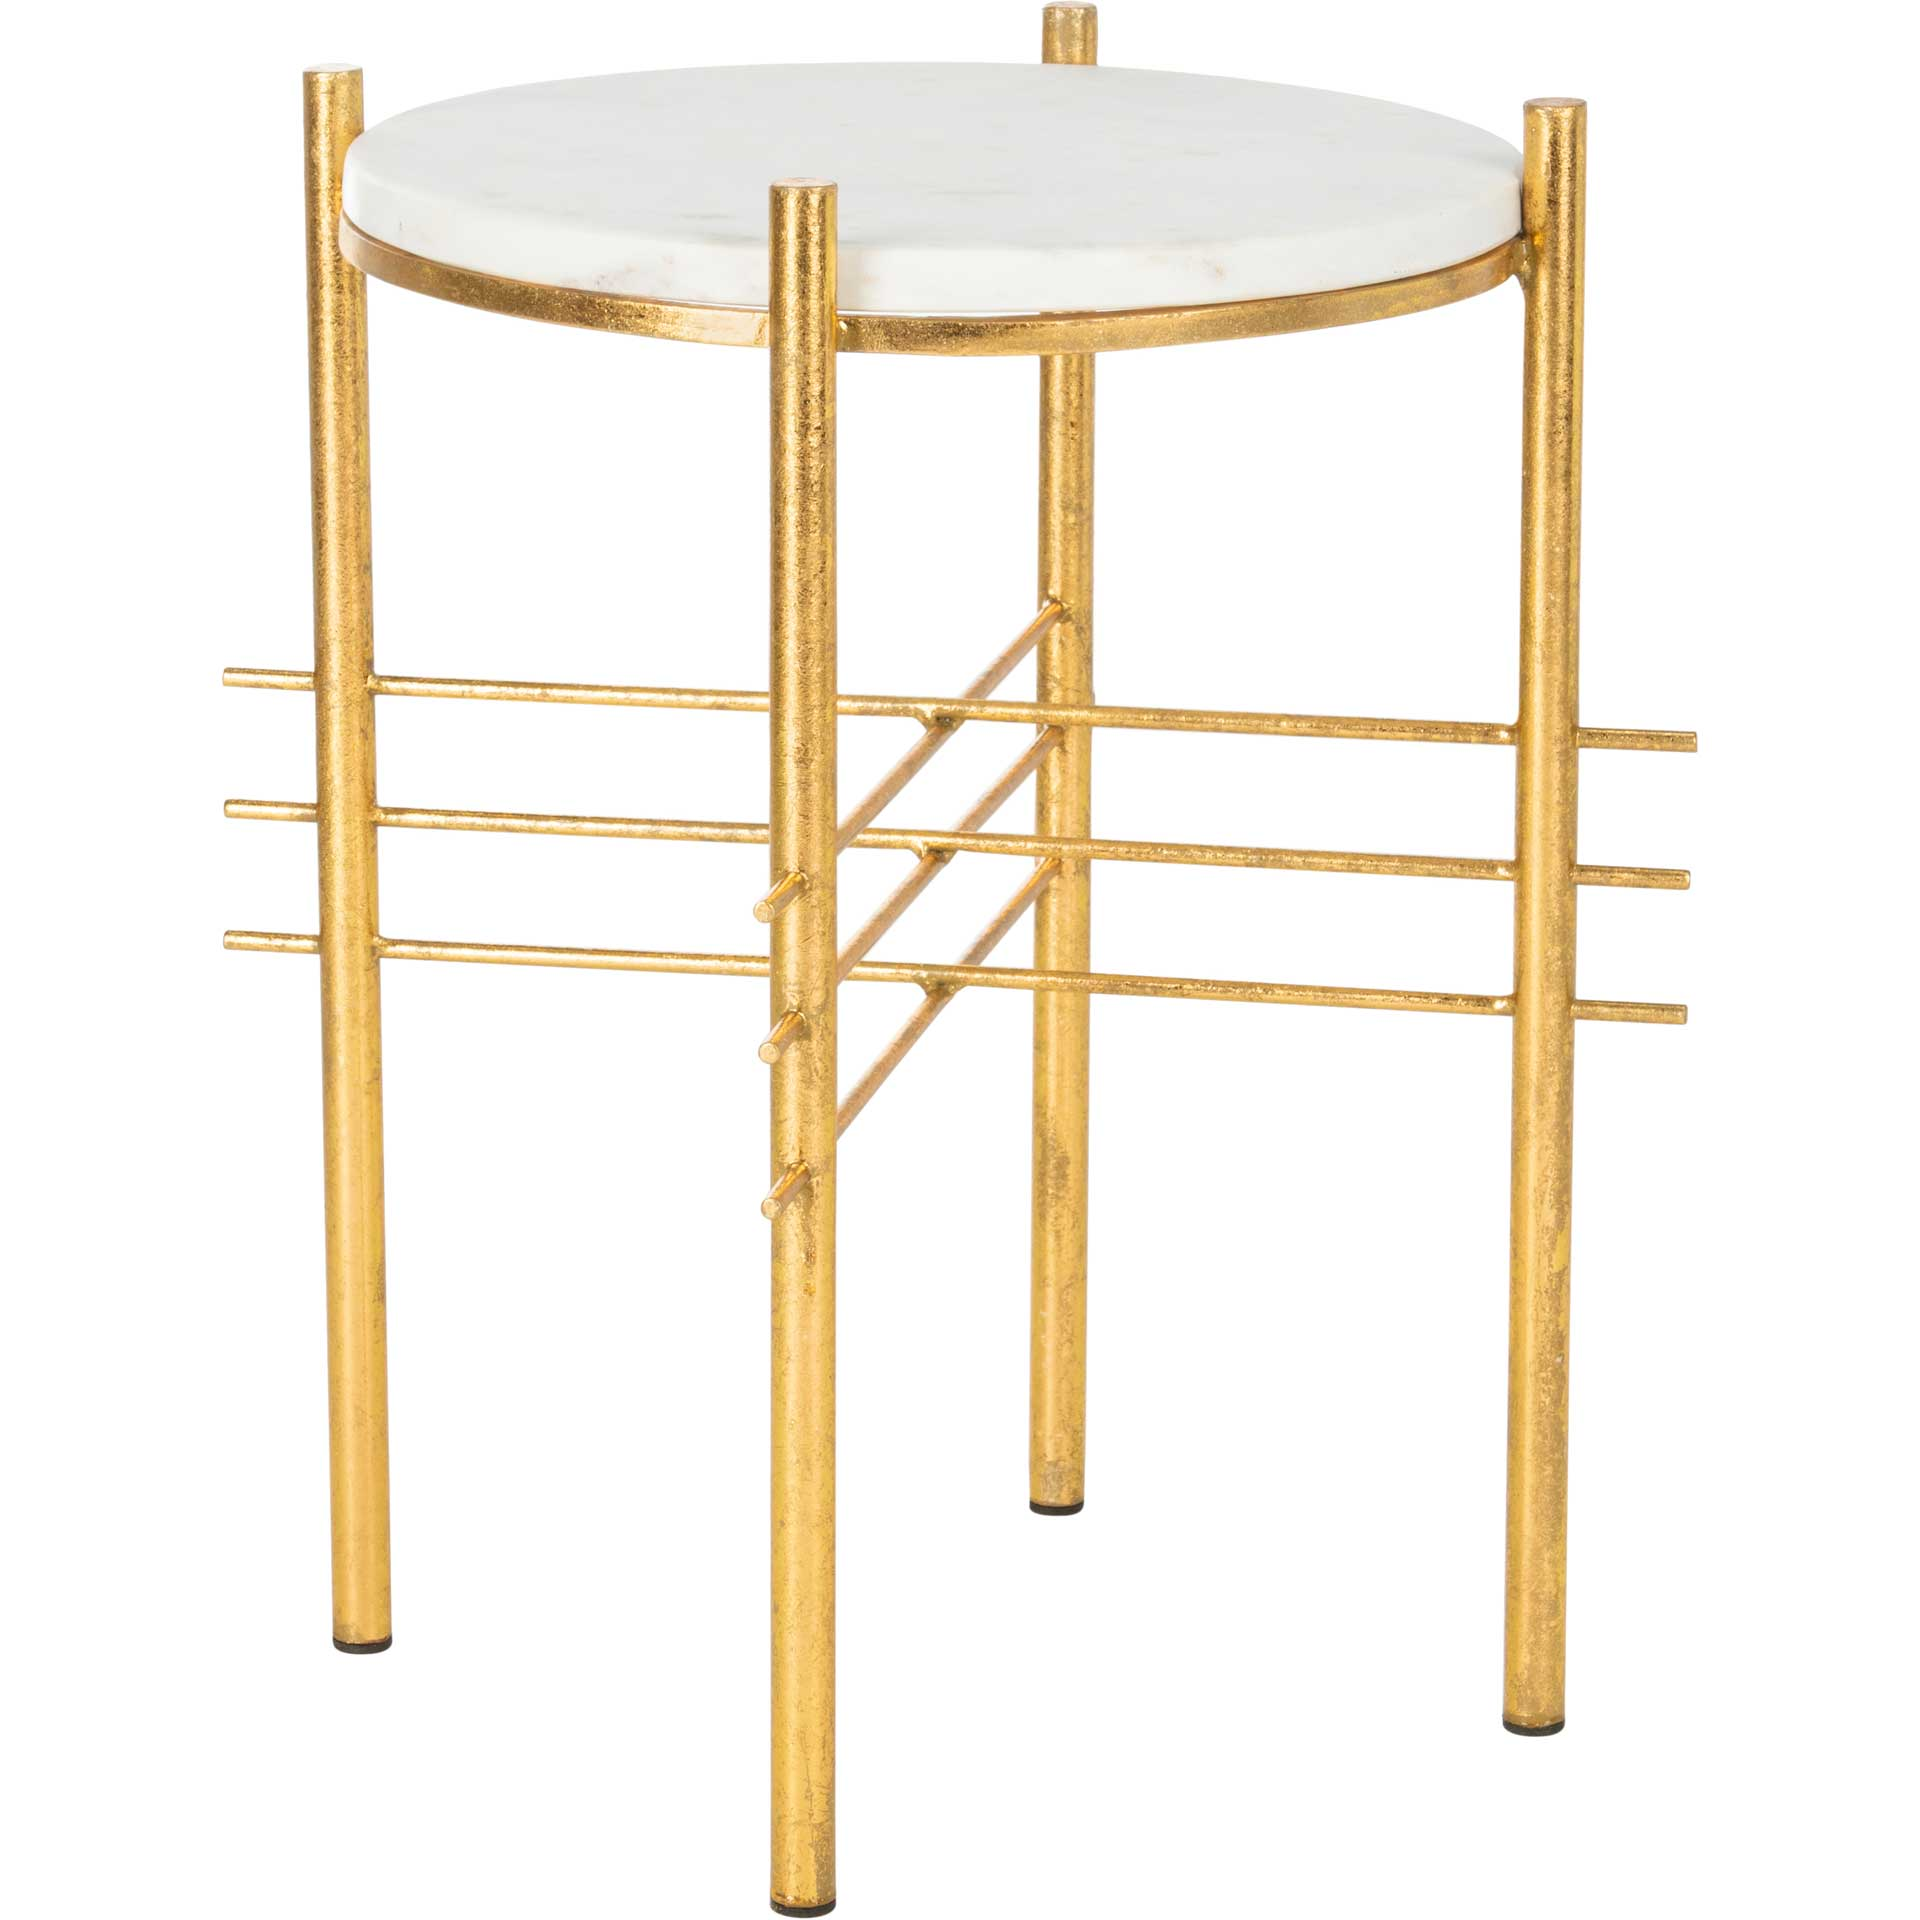 Jeffrey Round Accent Table White Marble/Gold